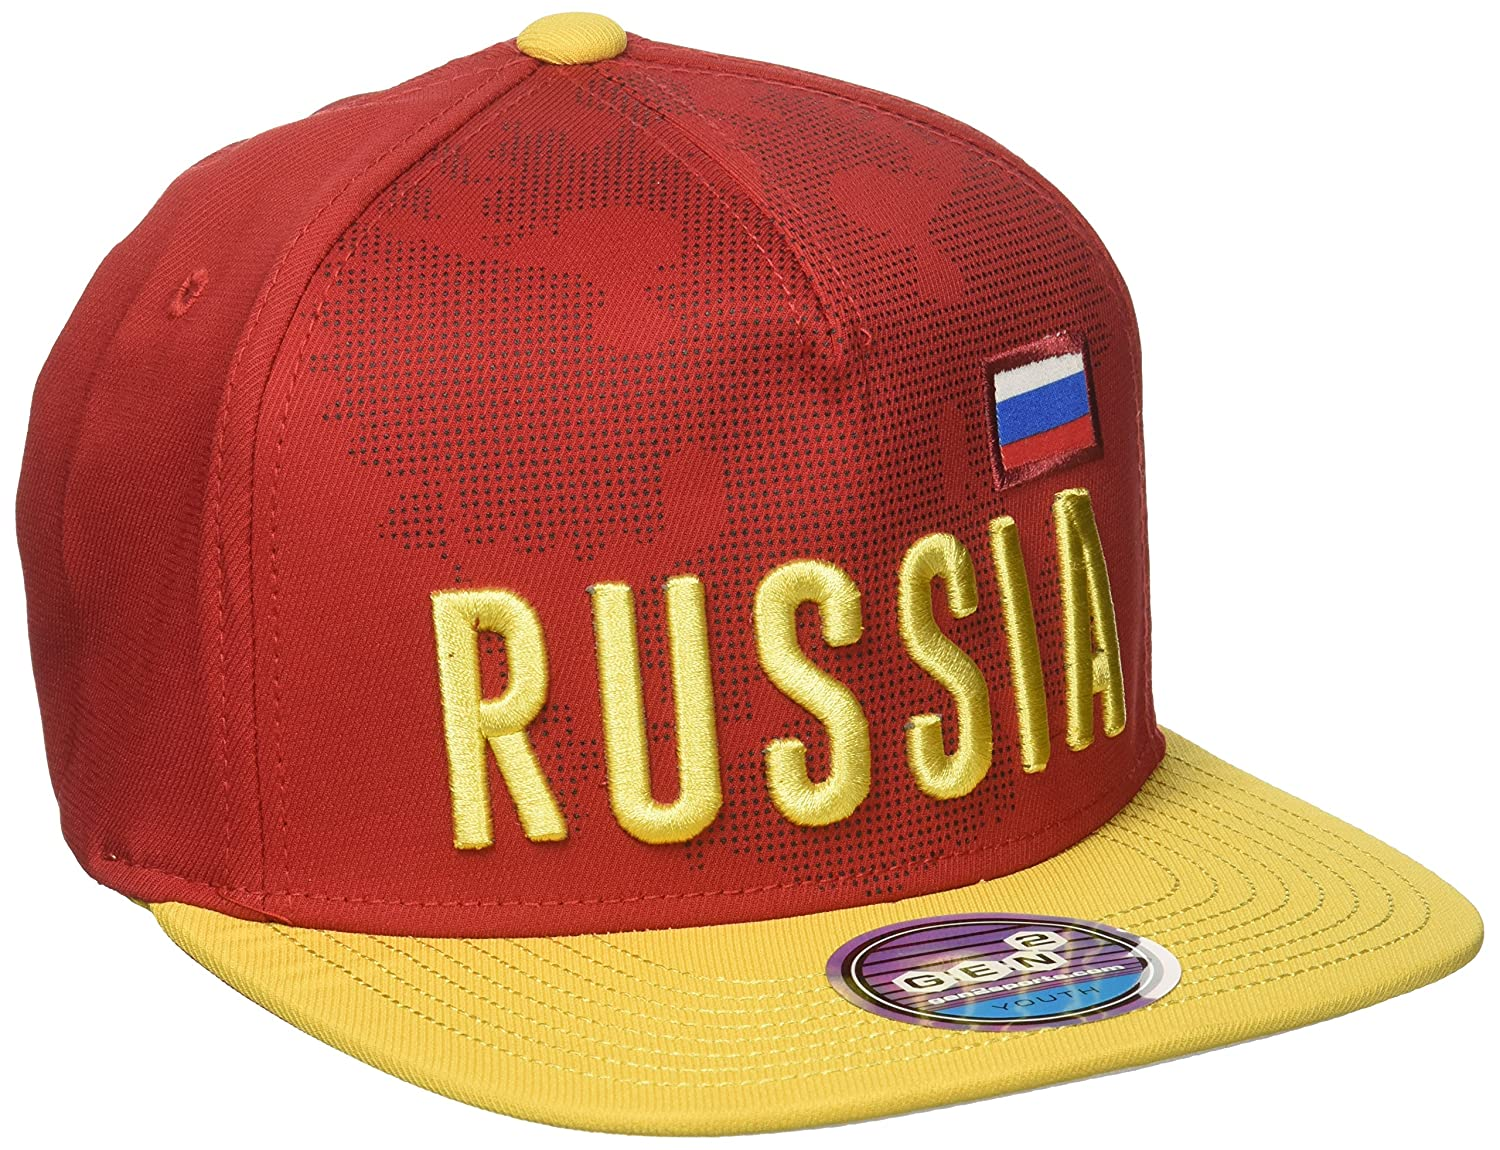 Amazon.com : Outerstuff World Cup Soccer Russia Boys Jersey Hook Flag Snapback with Adjustable Snap Closure, Burgundy, One Size : Sports & Outdoors